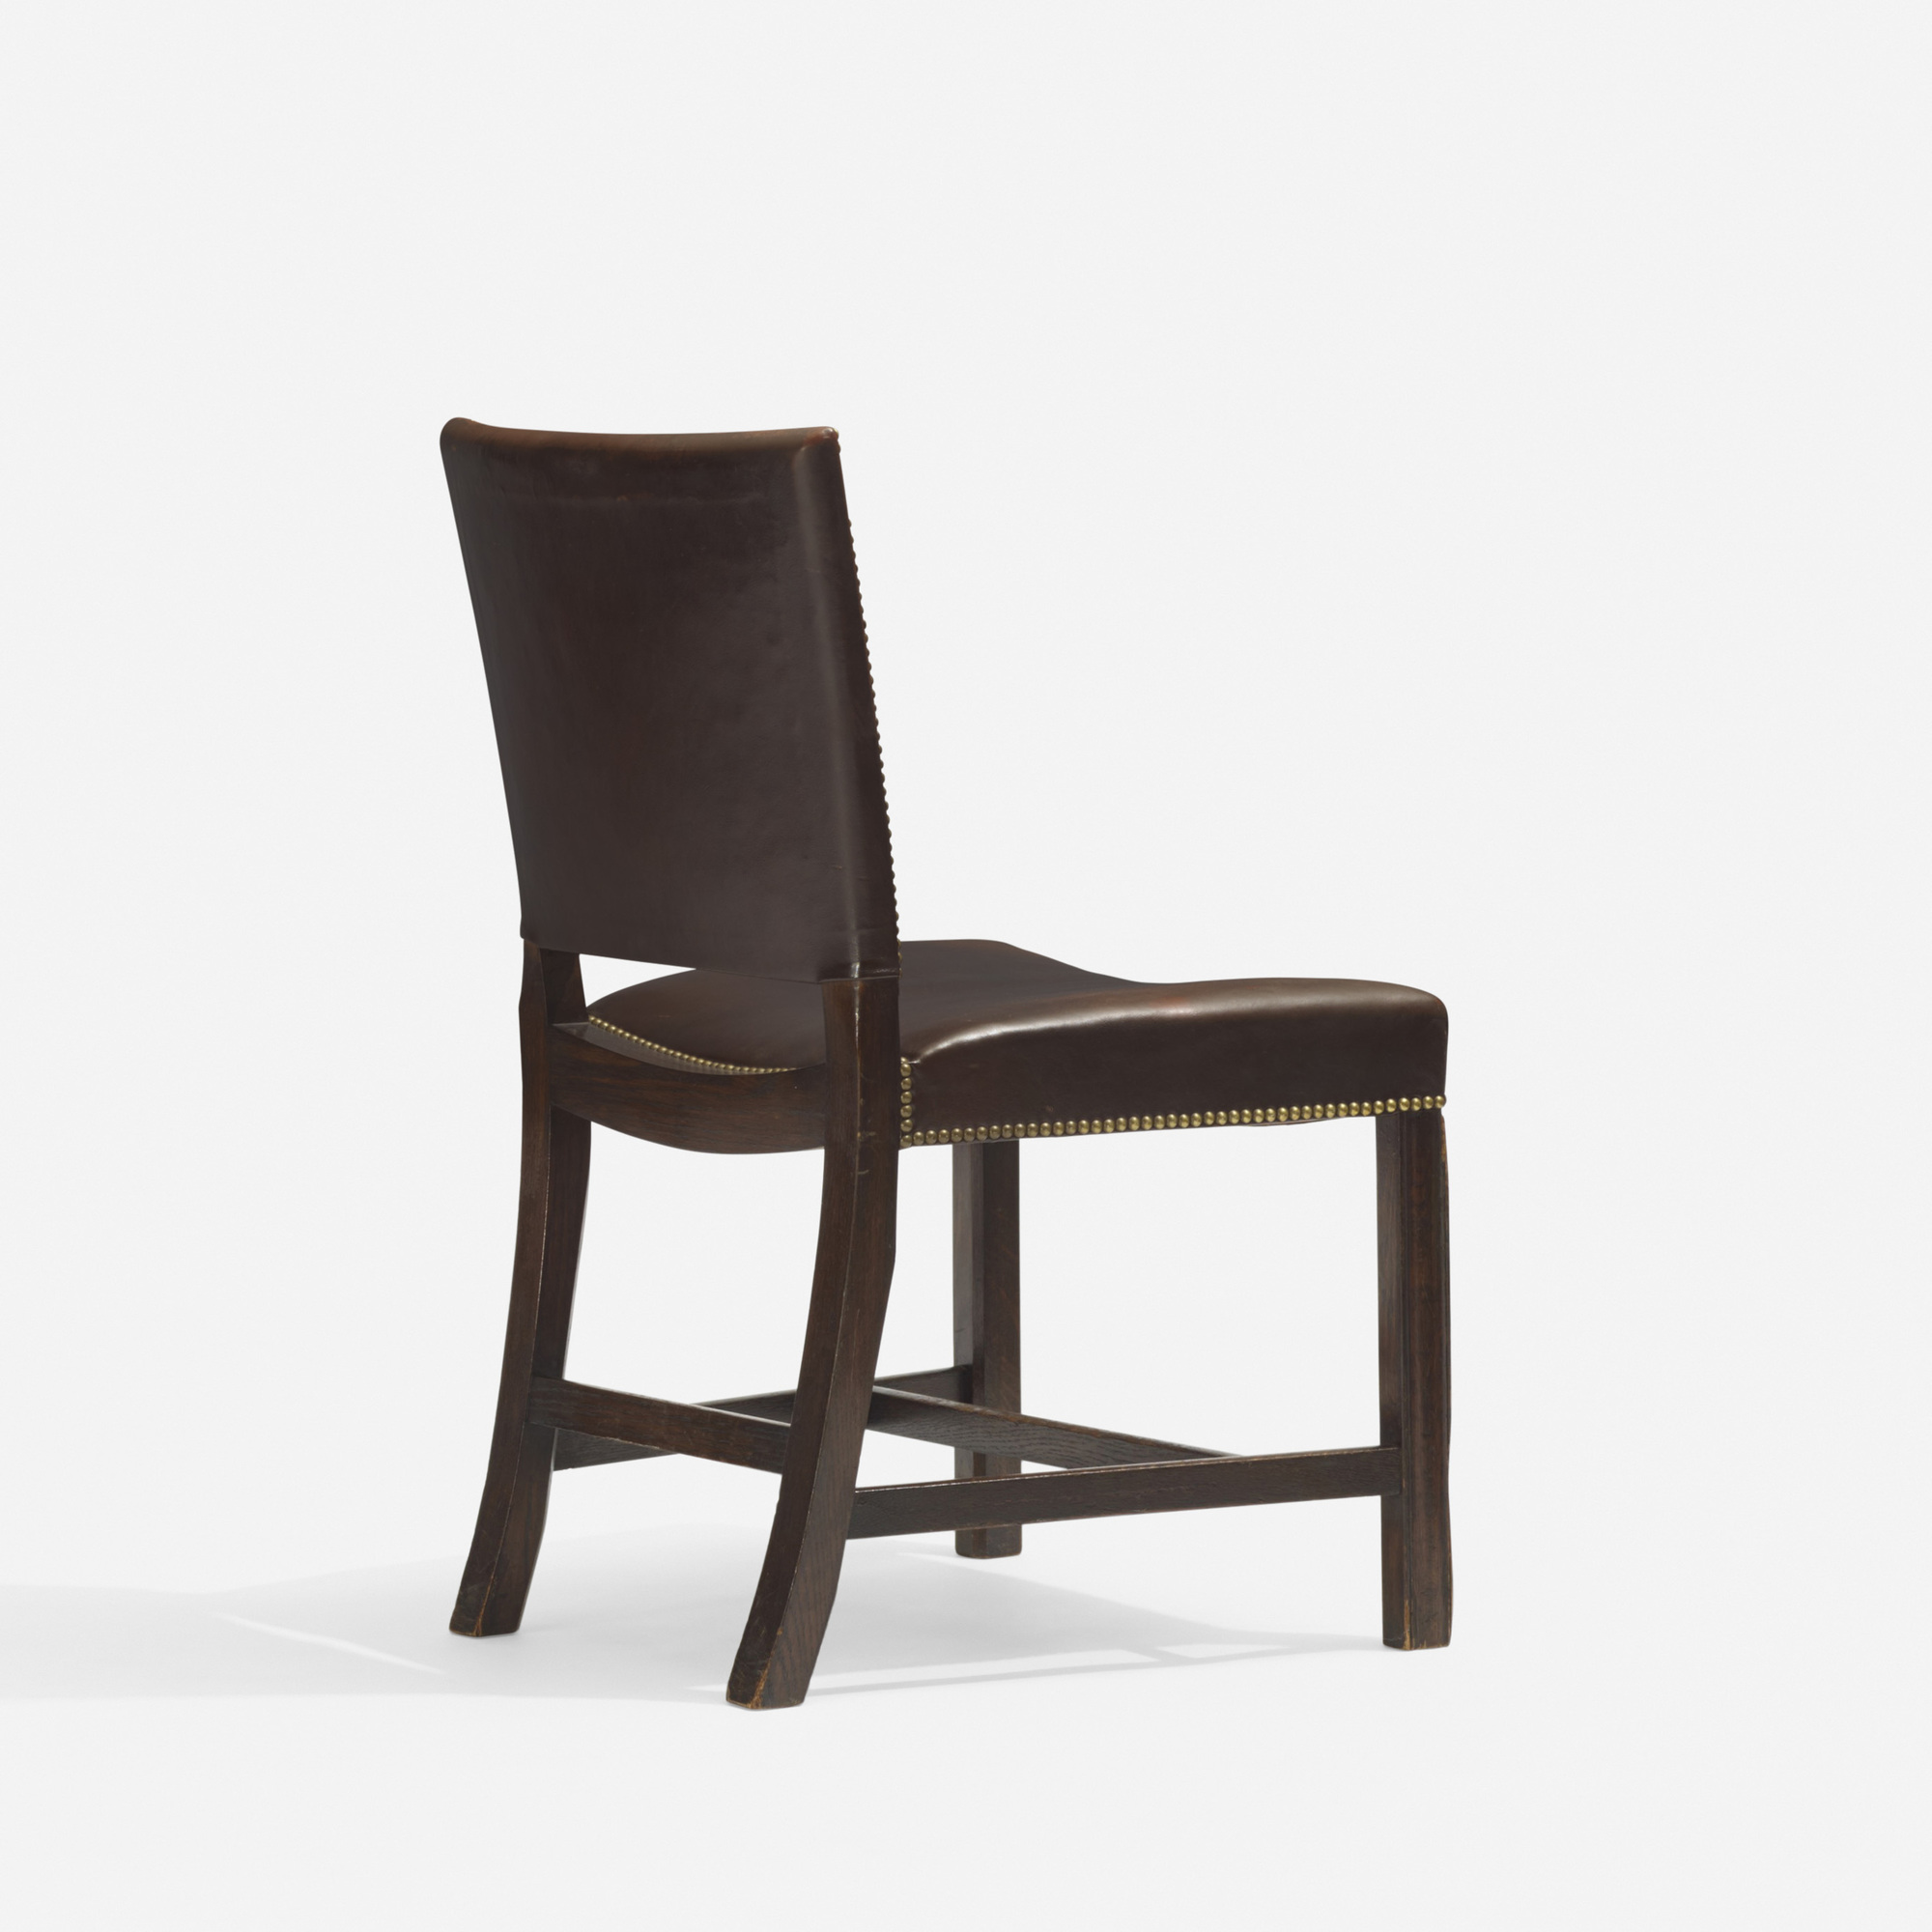 237: Kaare Klint / Barcelona chair, model 3758 (3 of 3)